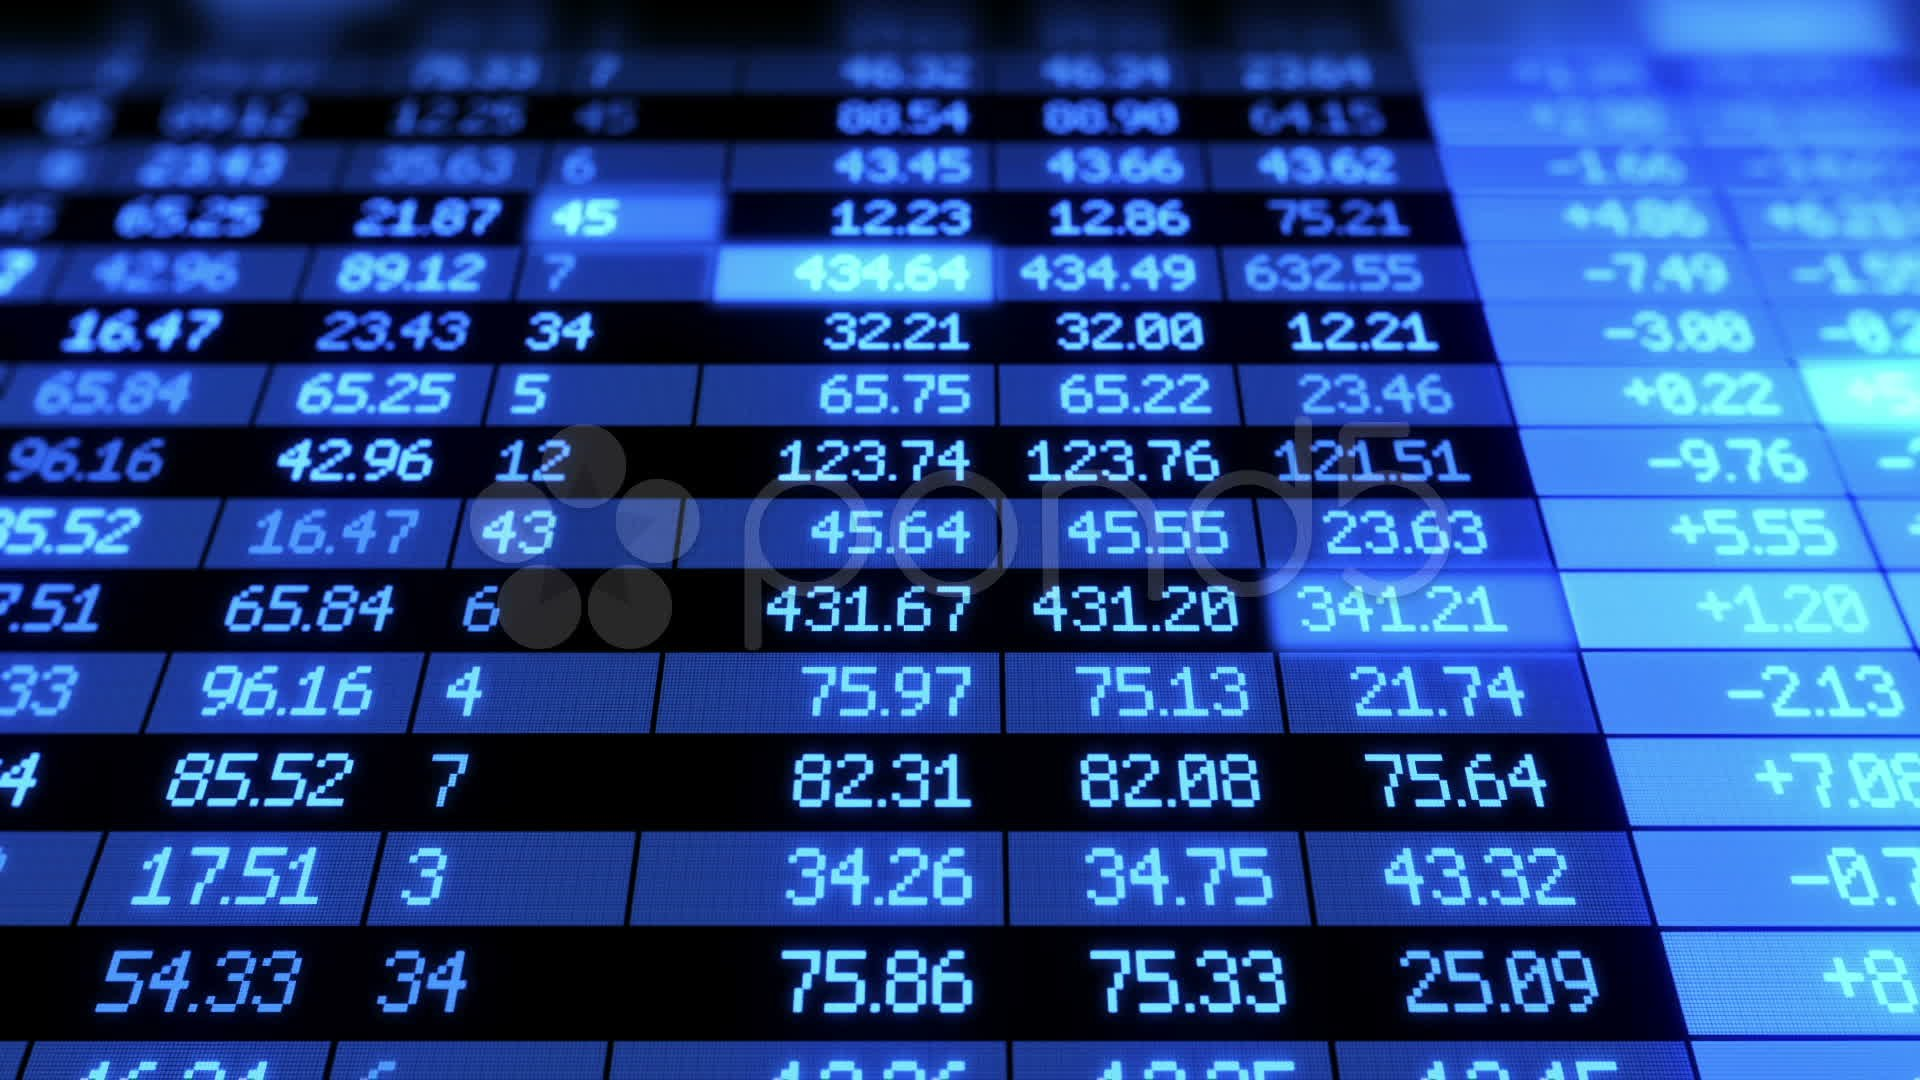 Investment Services   Stock Market 1749115   HD Wallpaper 1920x1080